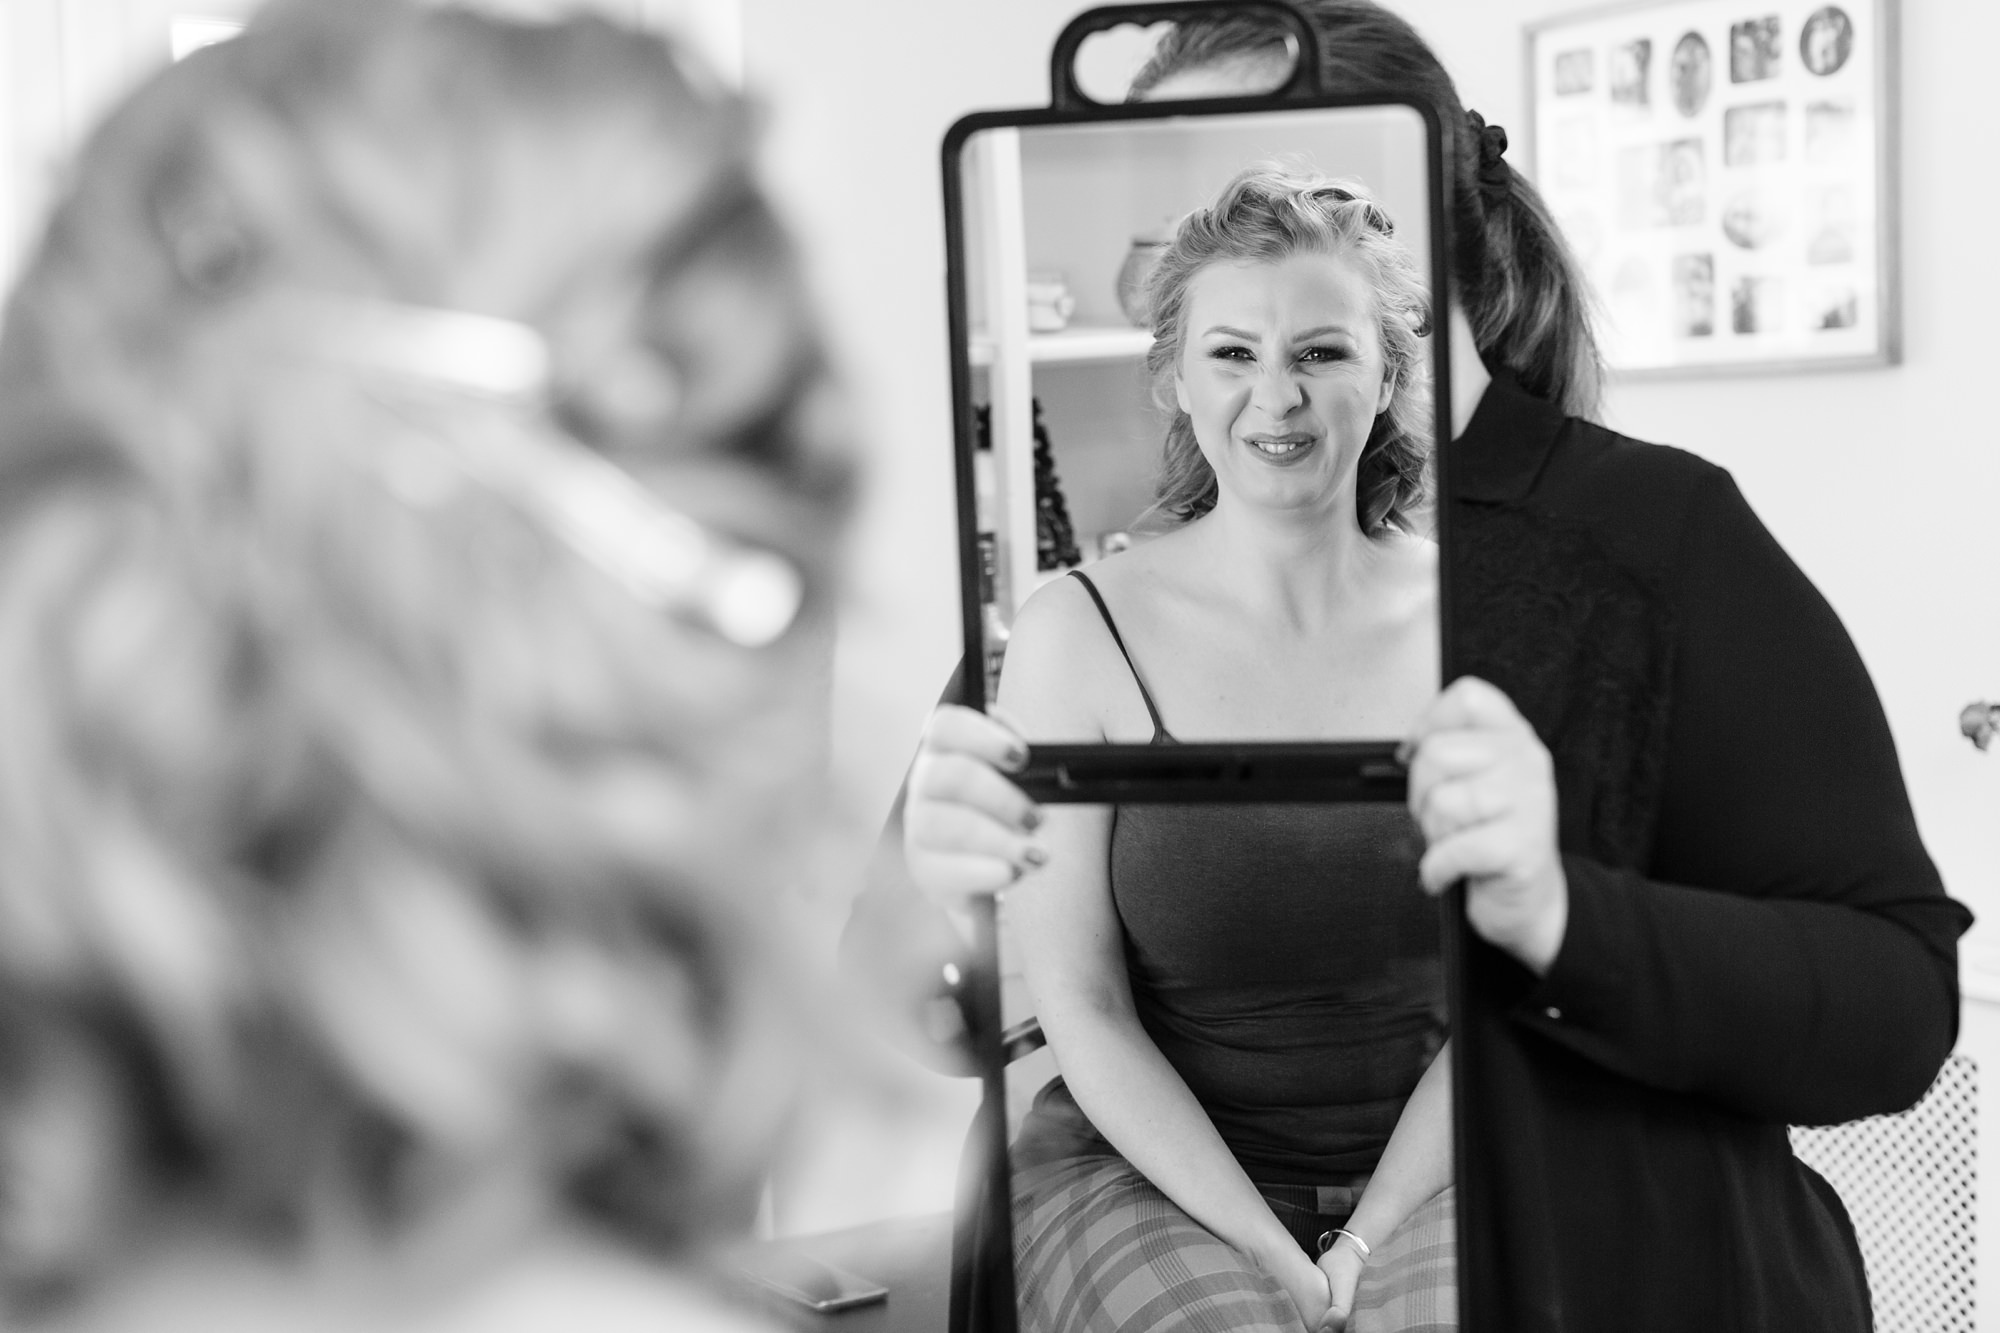 Reflection of bride in the mirror at York wedding